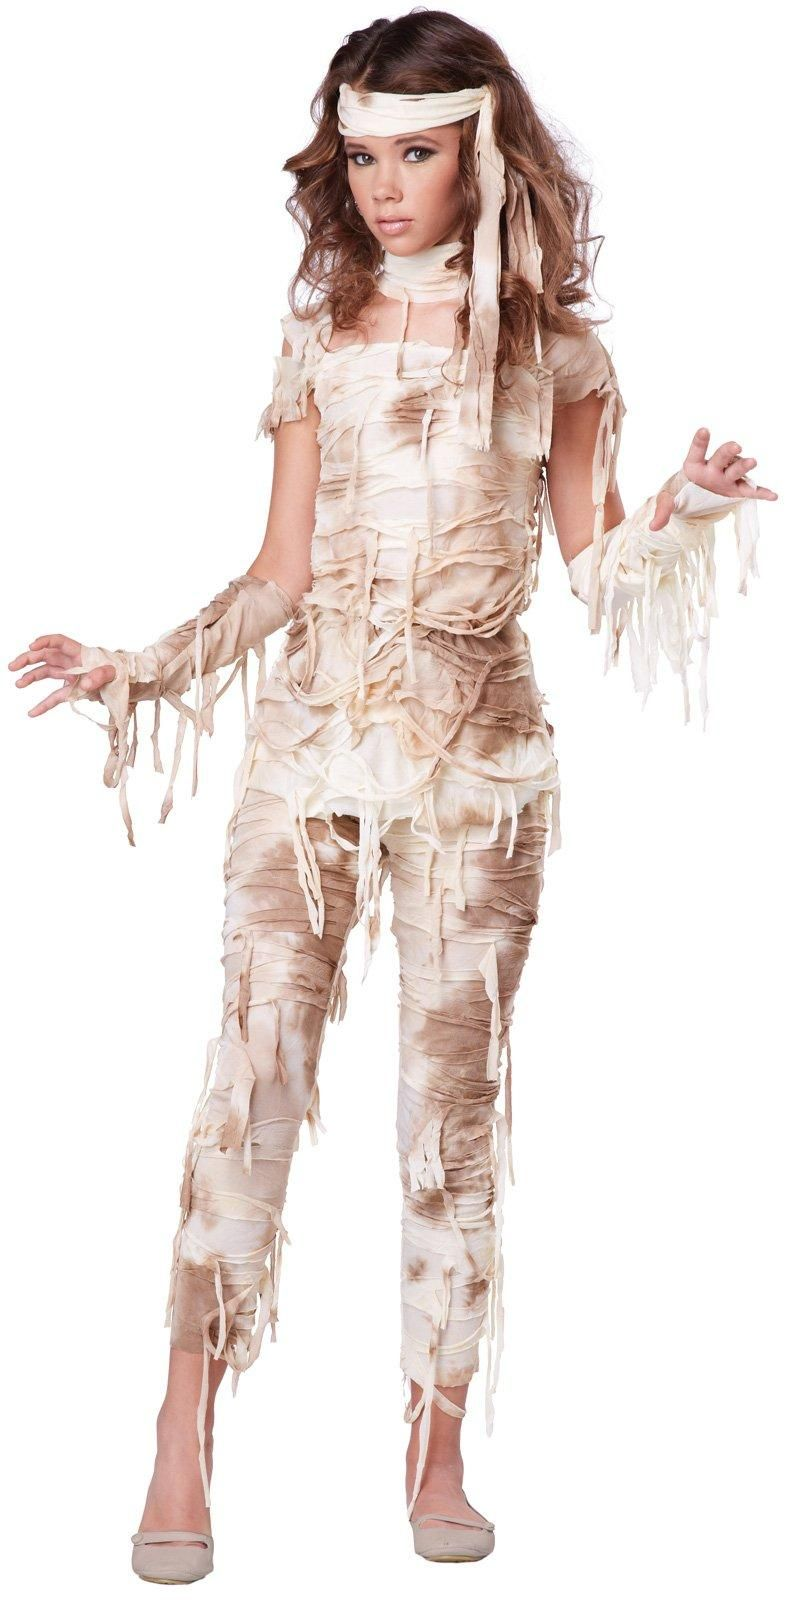 Homecoming Horror Costume | Costumes, Halloween costumes and ...